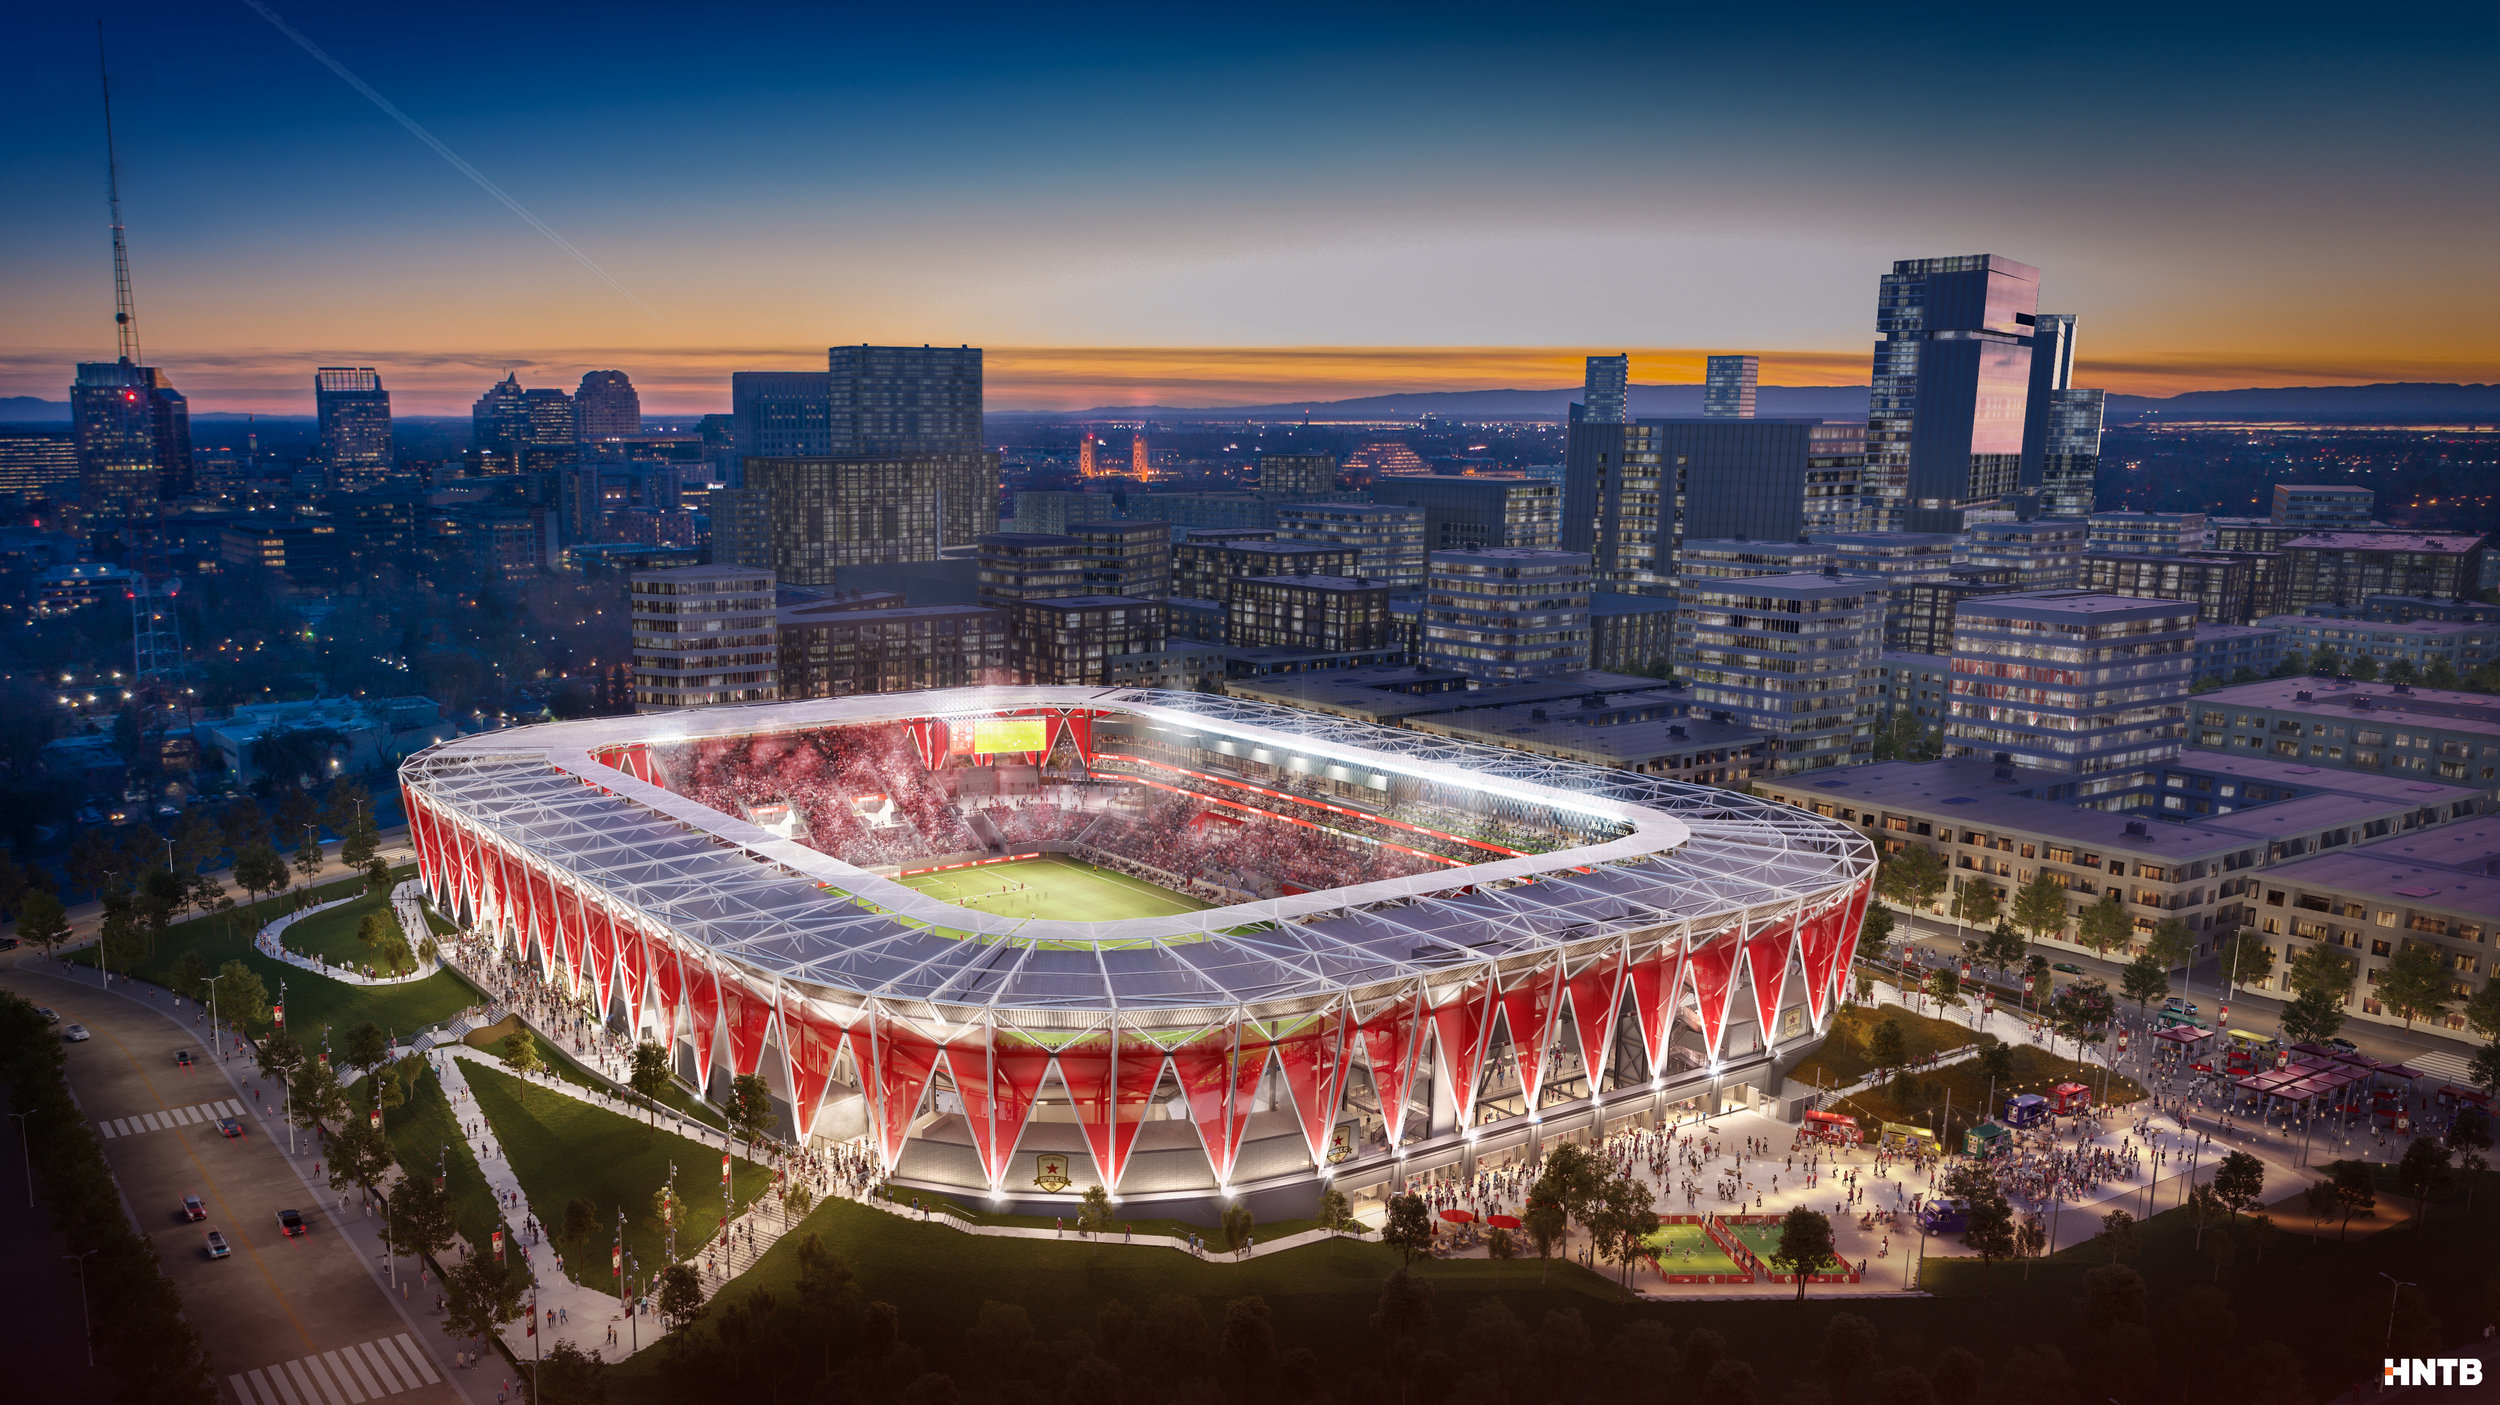 Artist rendering of proposed Major League Soccer stadium in downtown Sacramento. The project will anchor an estimated $5B economic revitalization effort at Sacramento's historic Railyards district (Credit: Sacramento Republic FC)